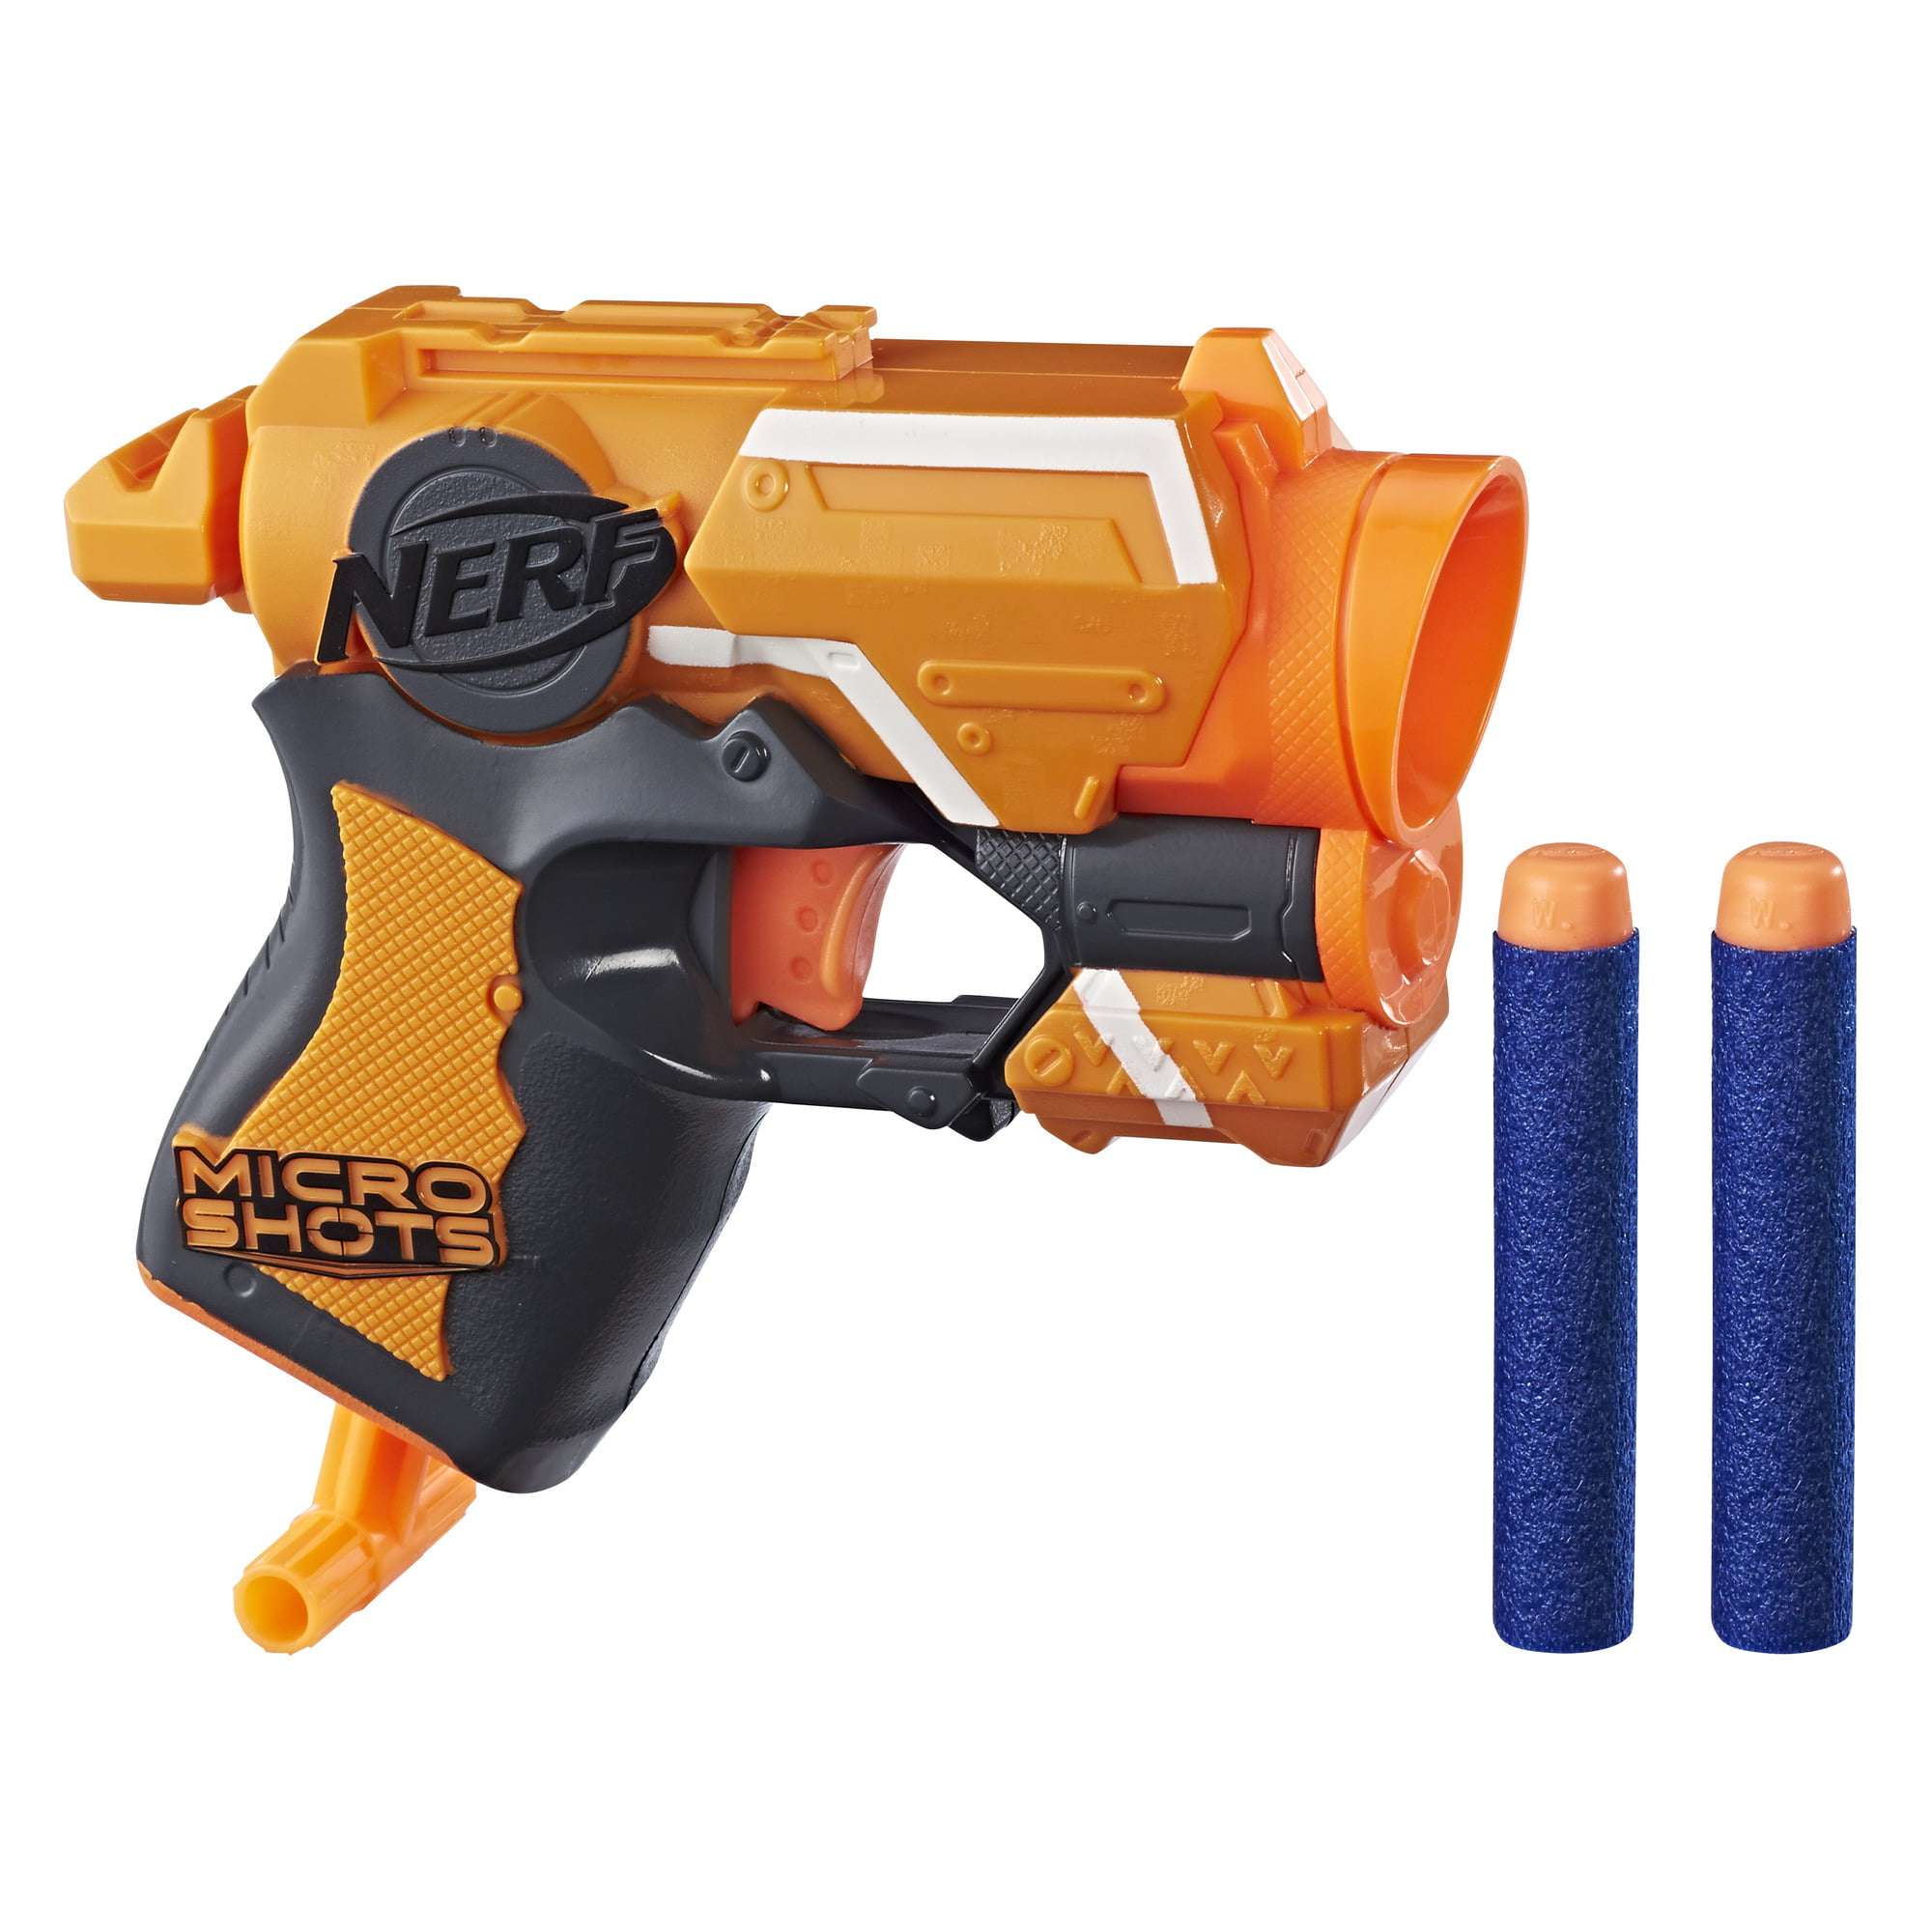 Nerf MicroShots N-Strike Elite Firestrike by Hasbro